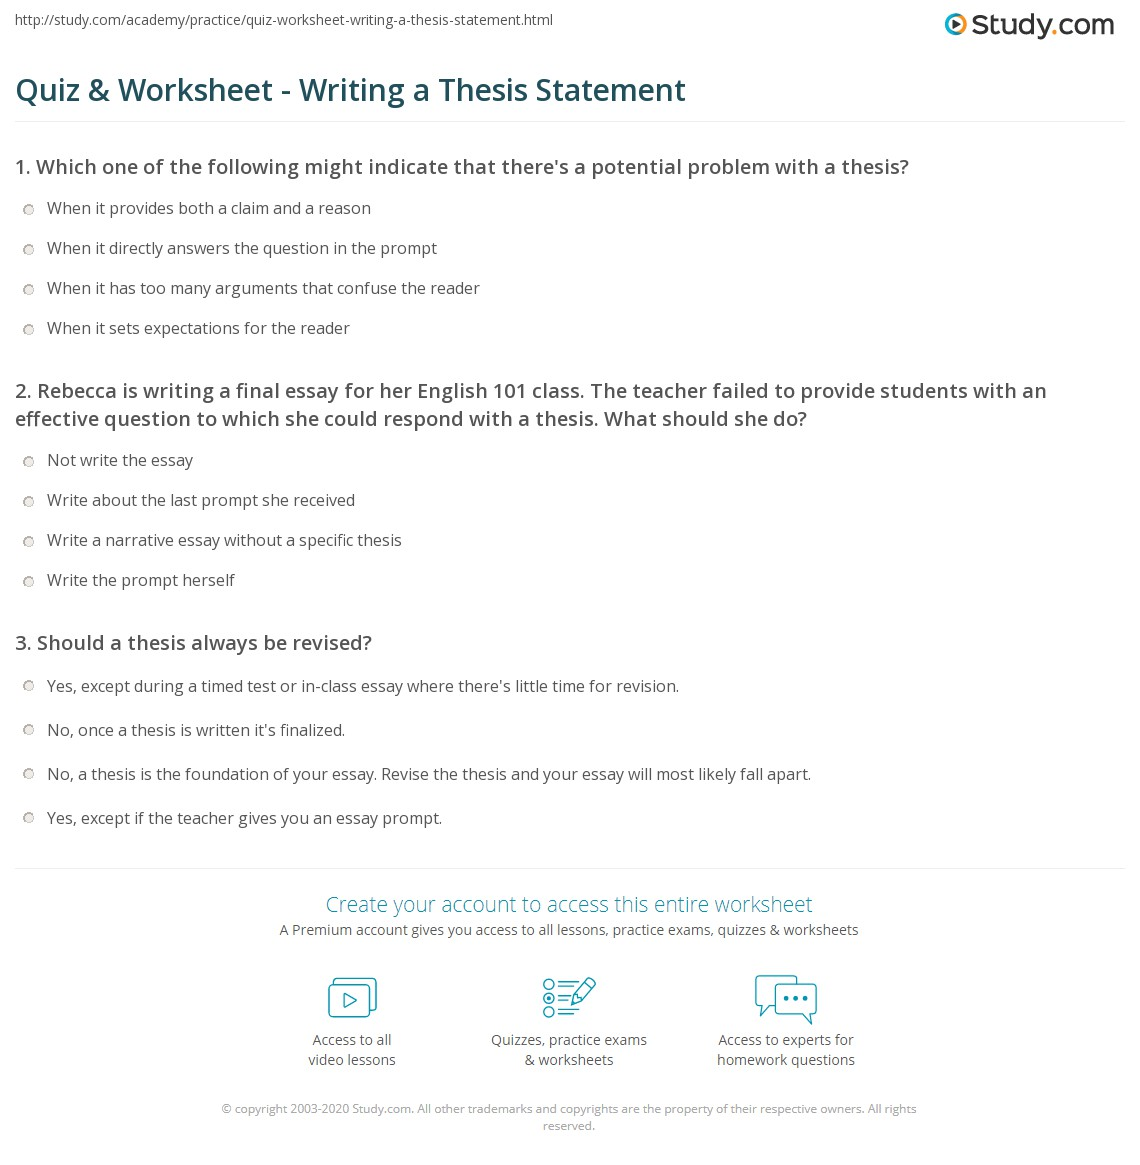 Quiz & Worksheet - Writing a Thesis Statement | Study.com